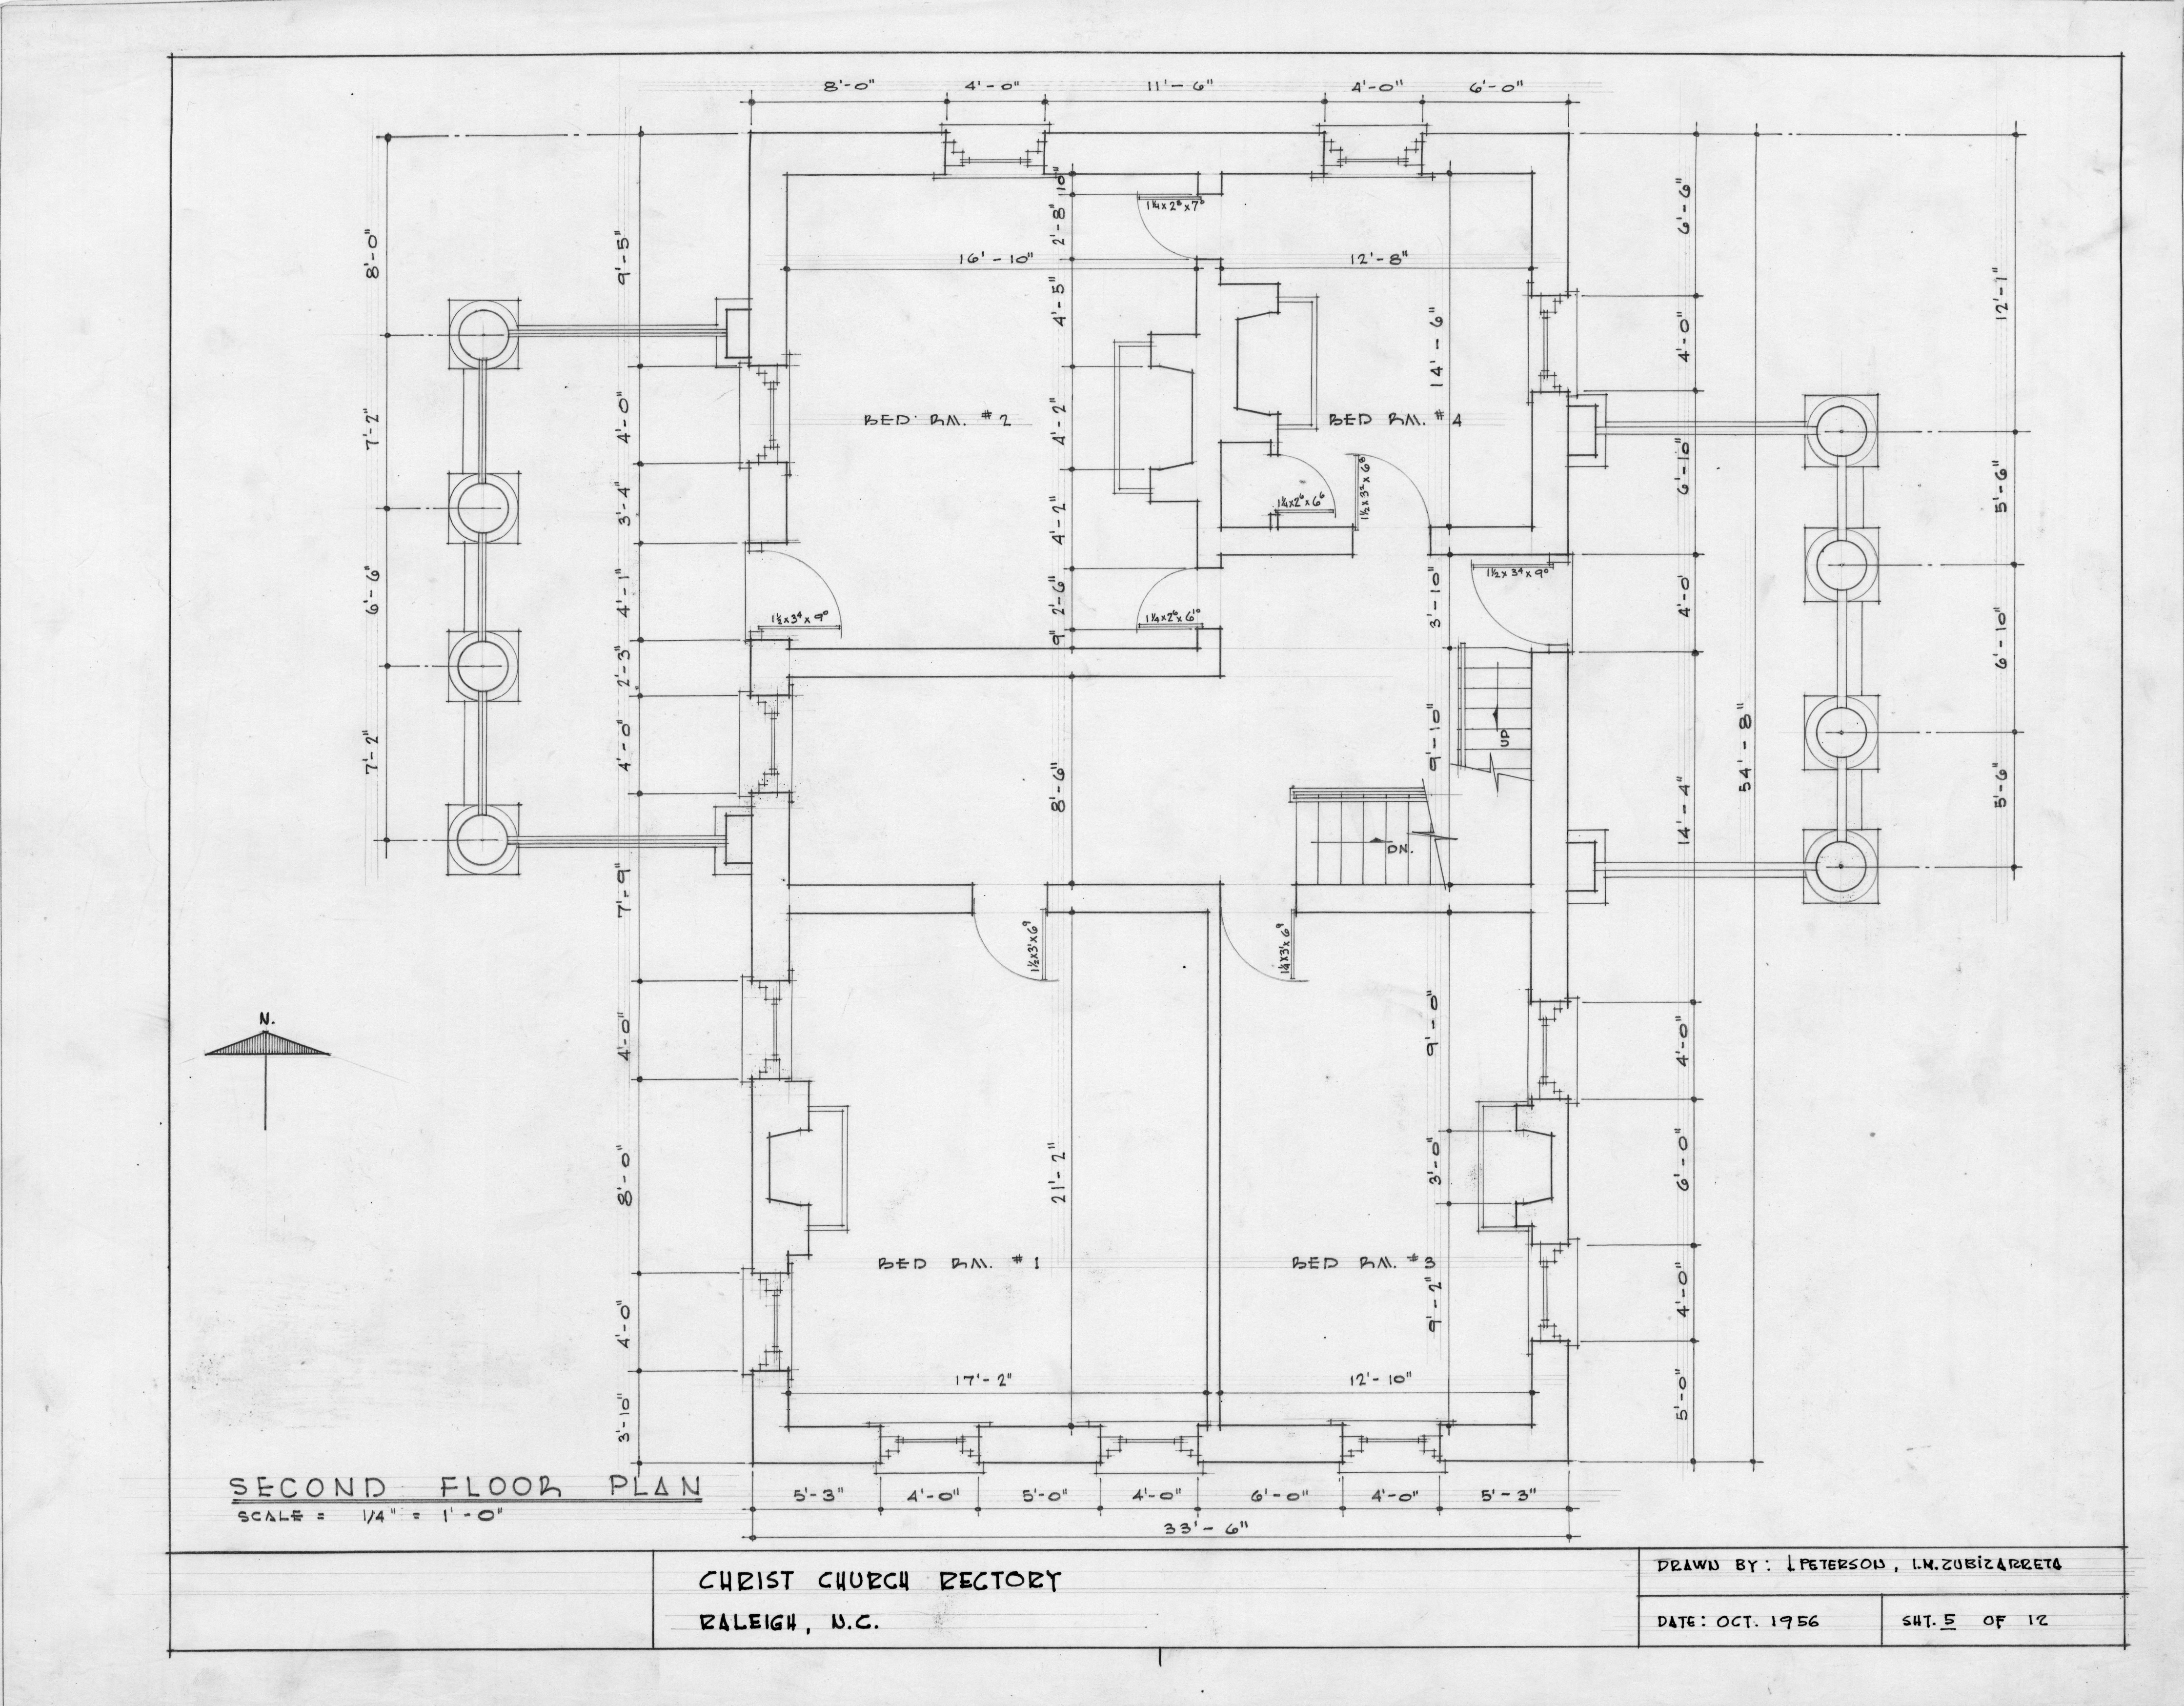 alfa img showing gt small branch bank floor plans